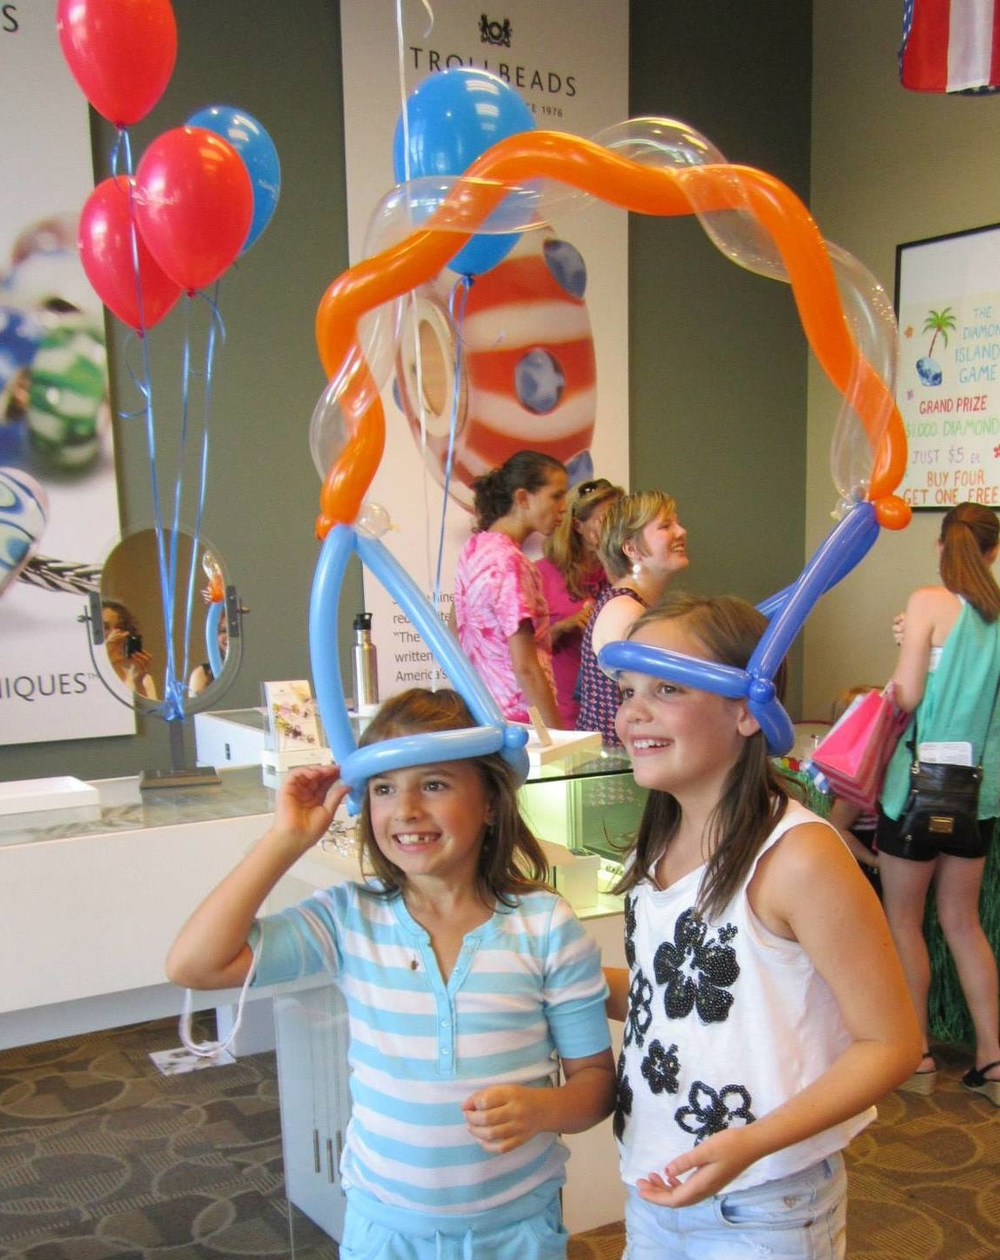 Two person balloon hat